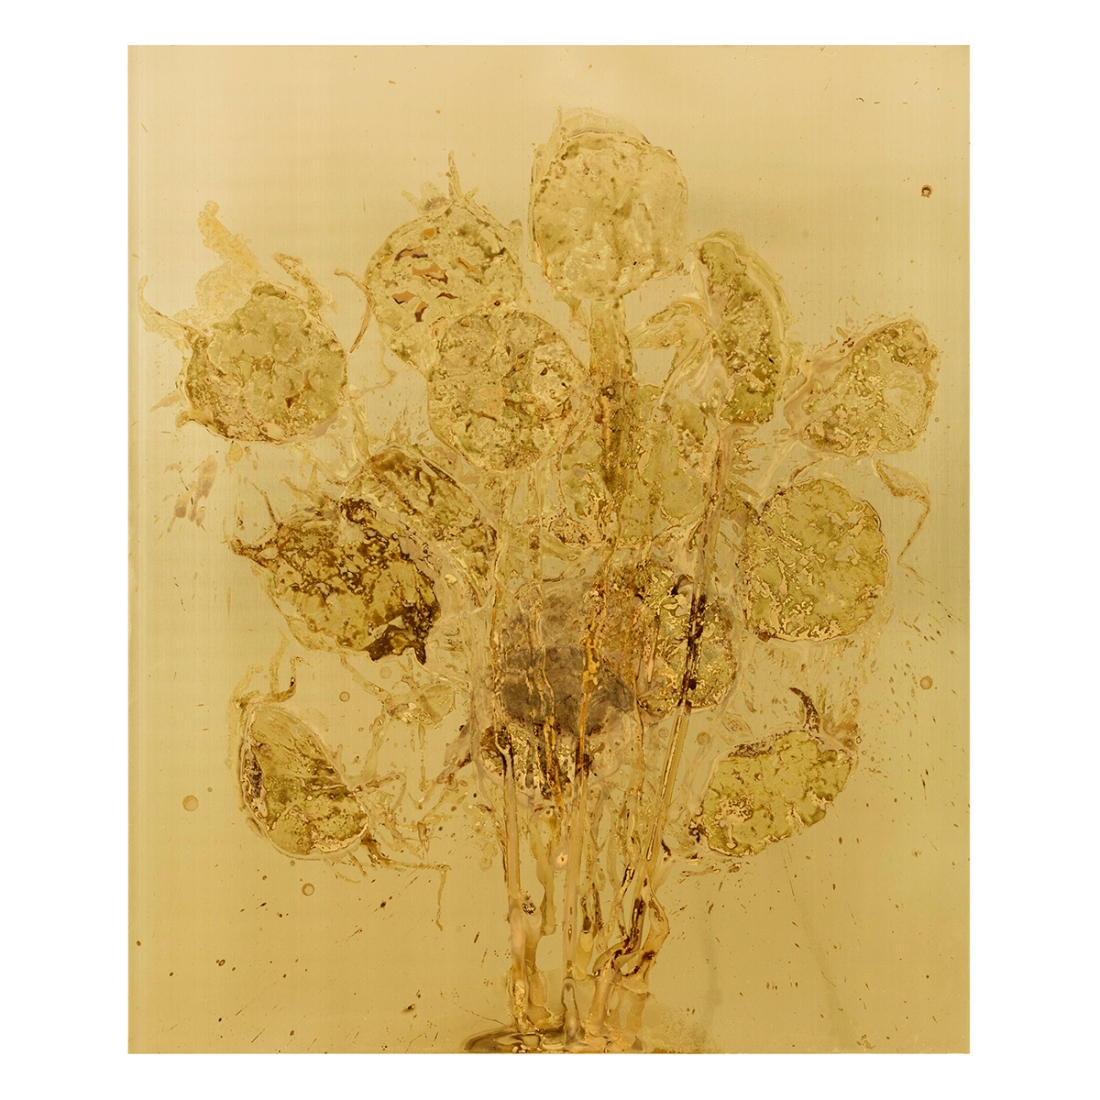 SUNFLOWERS Messinki, ihmisen istukan jäänteet Brass, original substances of human a placenta 120 x 100cm 2016